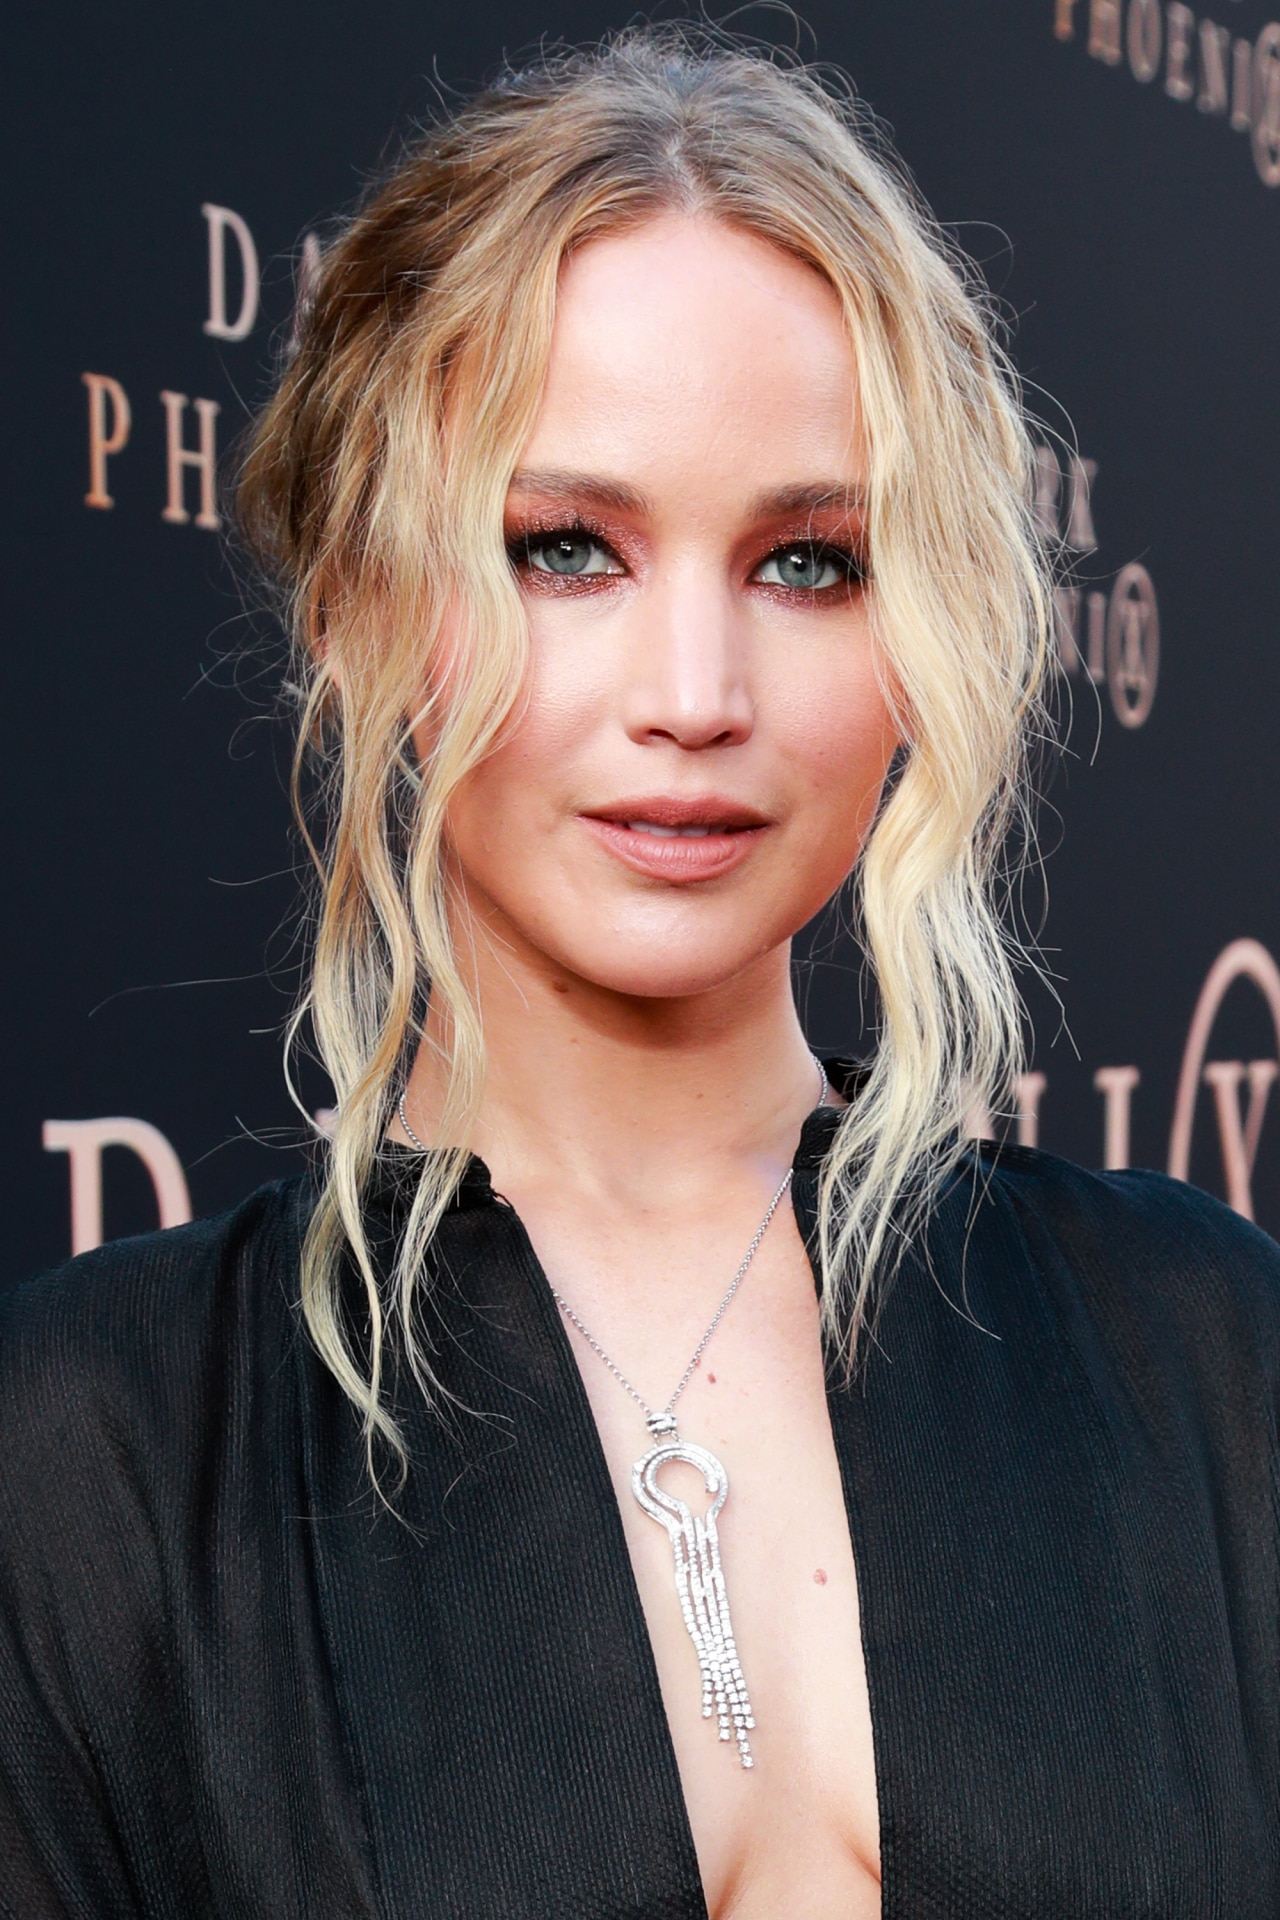 Jennifer Lawrence talks wedding planning and why her bachelorette party left her in tears